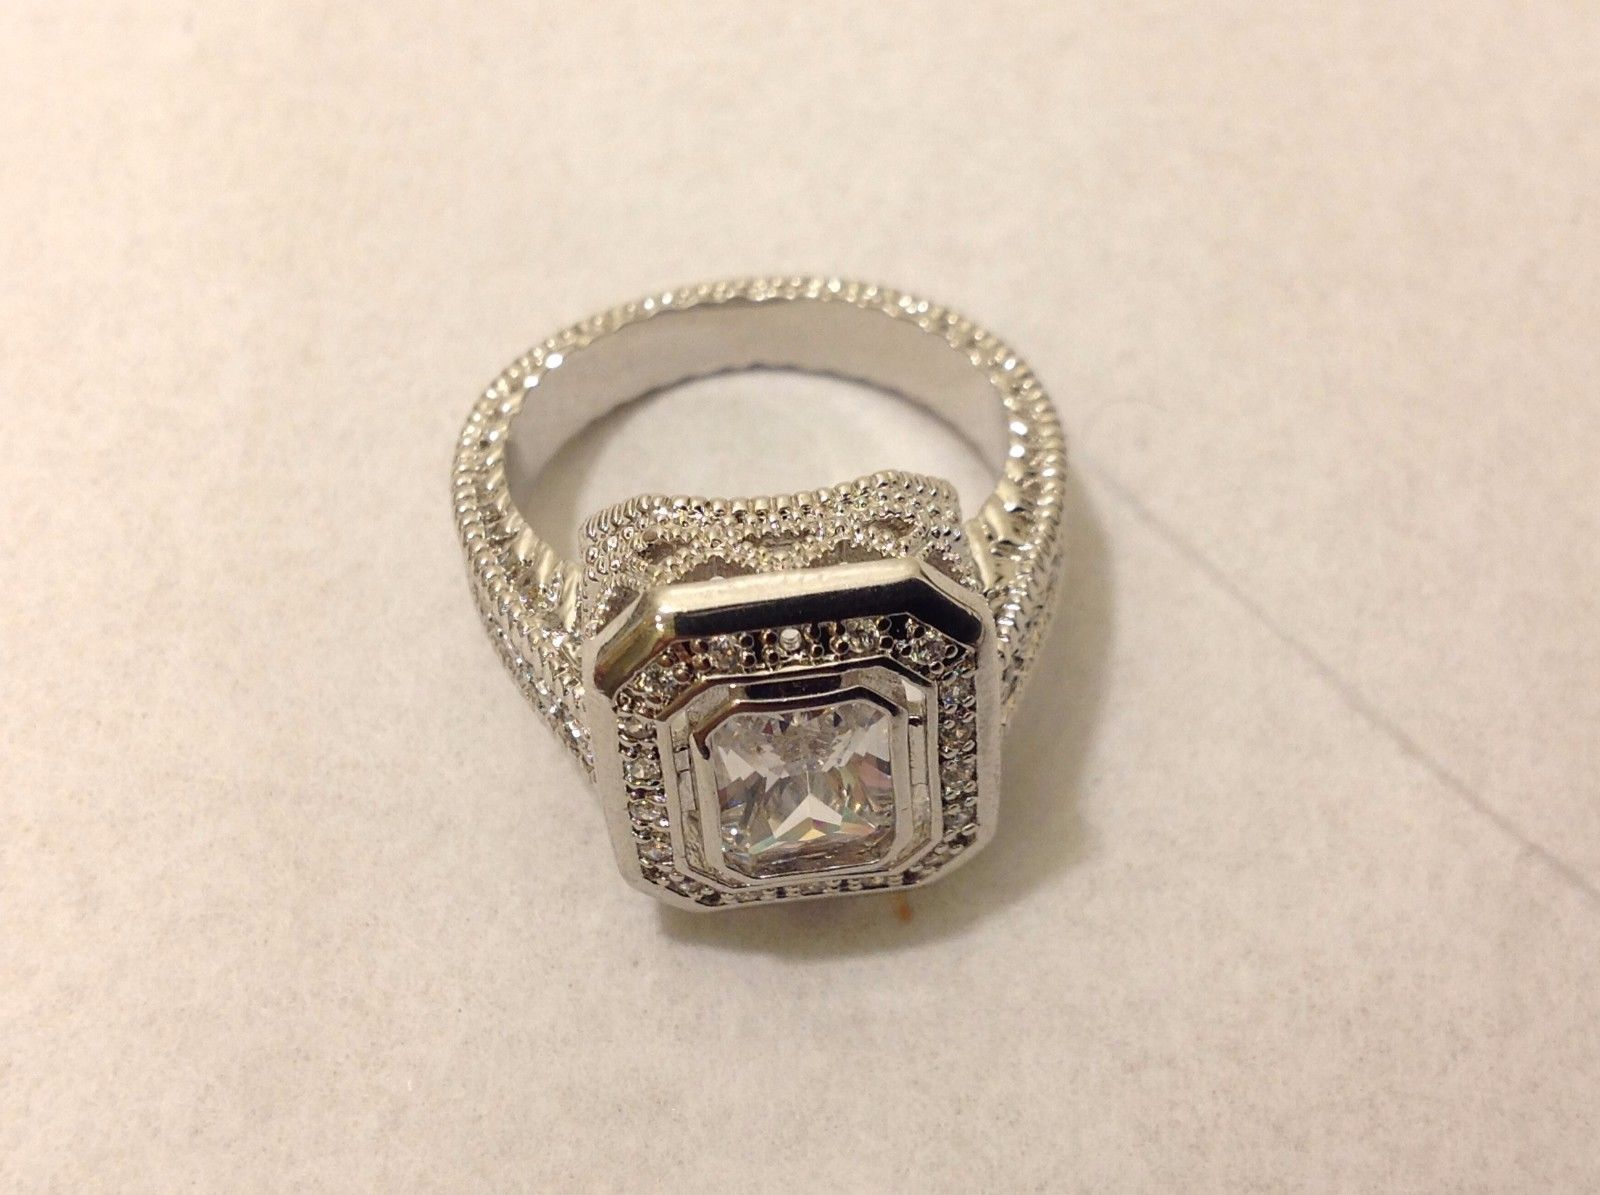 Intricate Silver Toned Rig Filigree CZ Size 9 Missing 1 Small Crystal